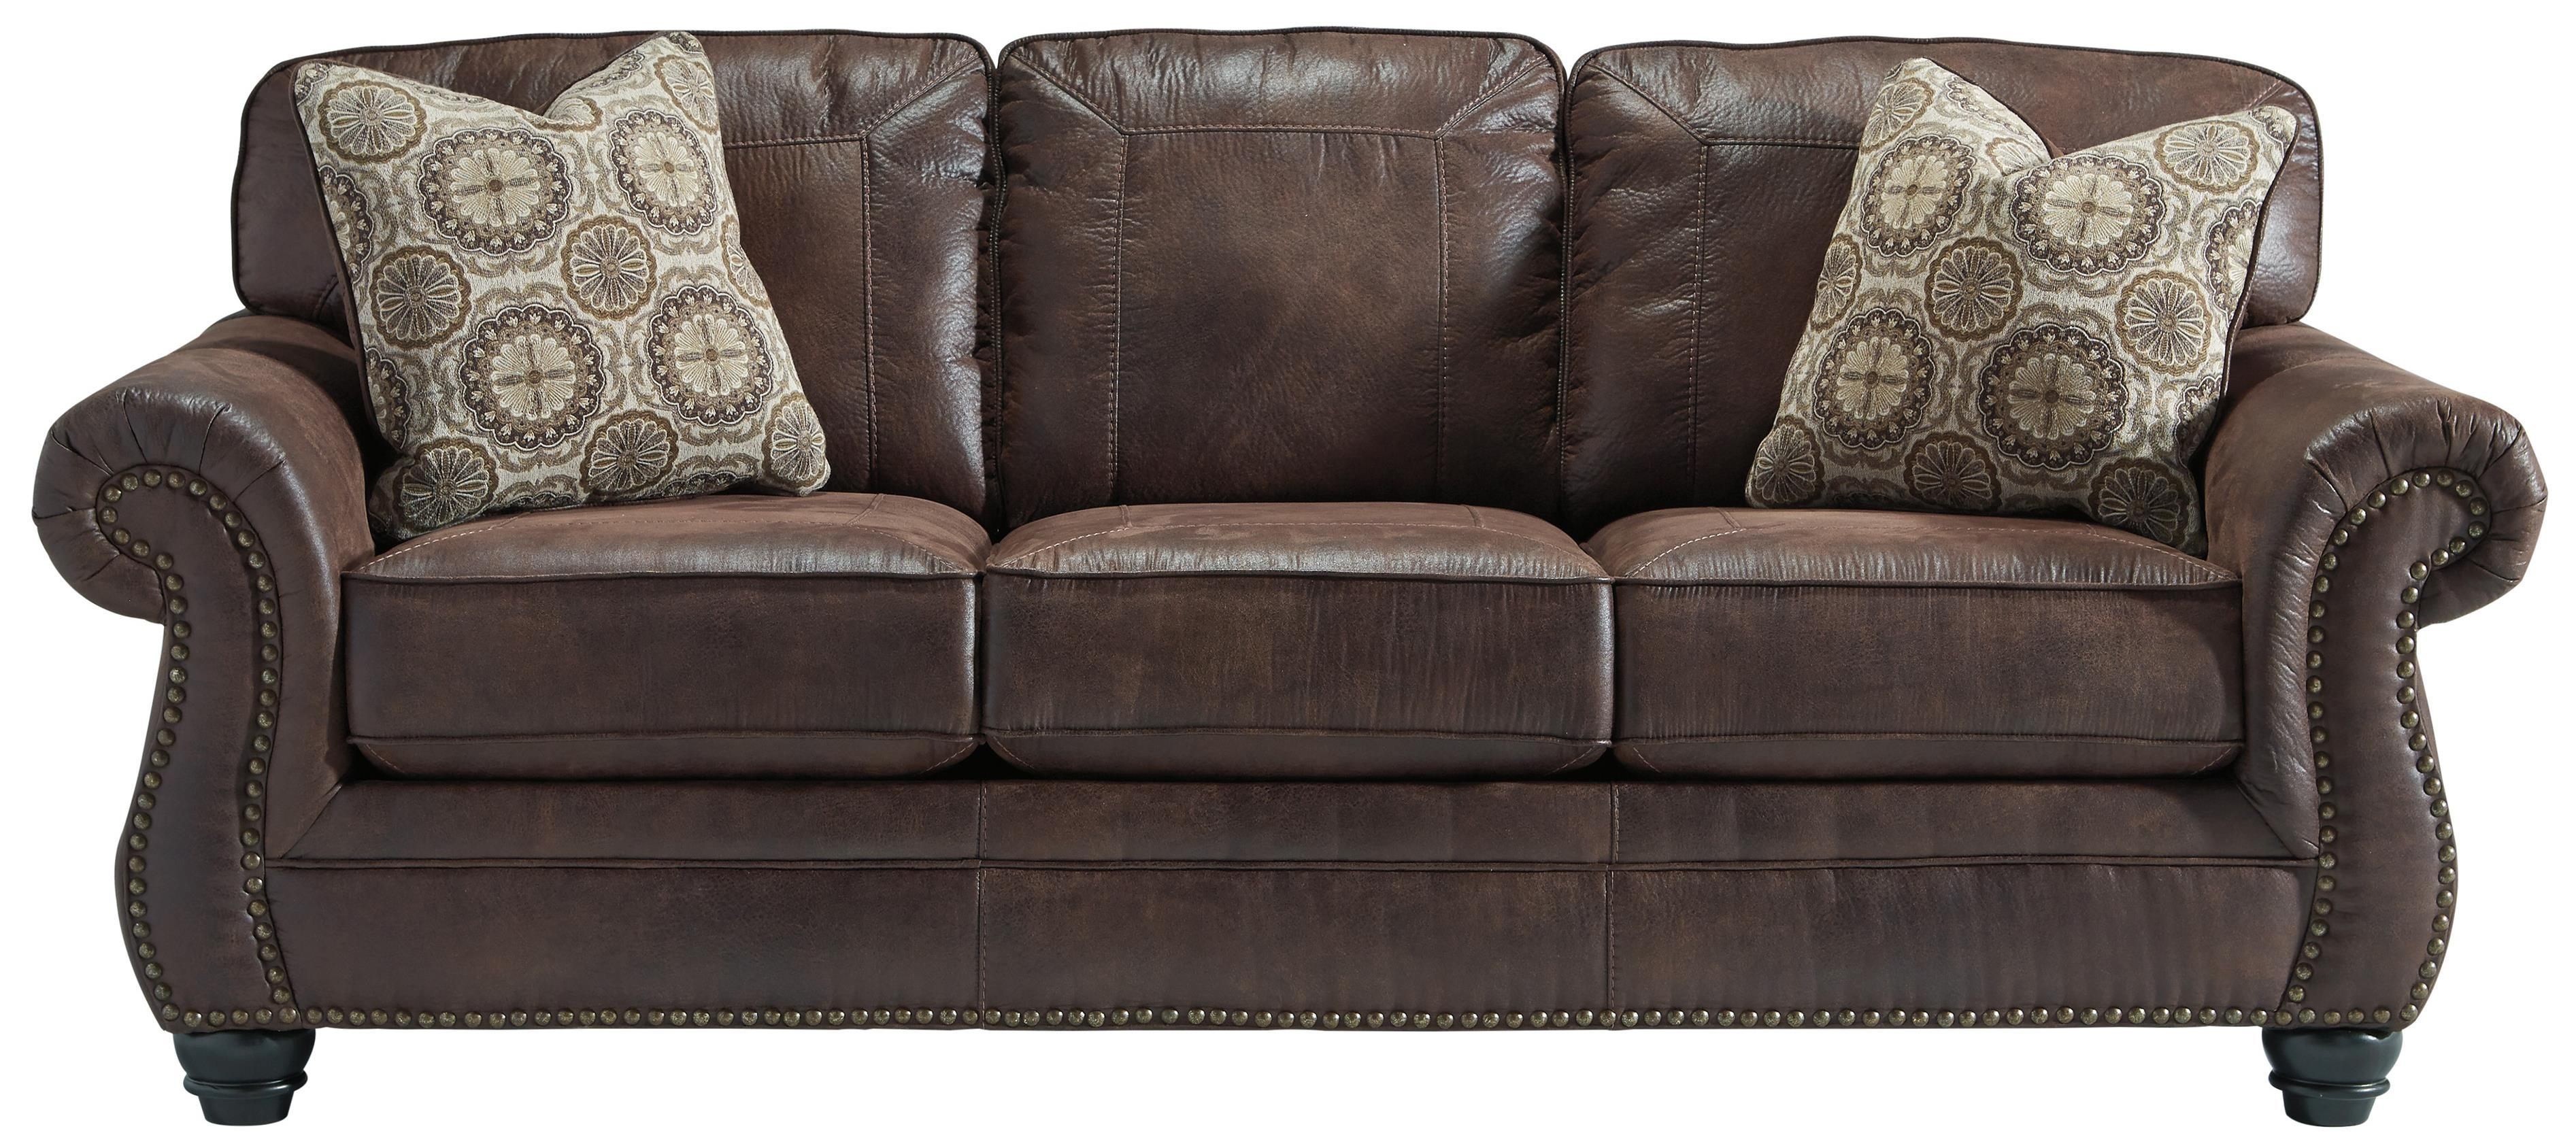 Benchcraftashley Breville Faux Leather Sofa With Rolled Arms Intended For Benchcraft Leather Sofas (View 2 of 20)